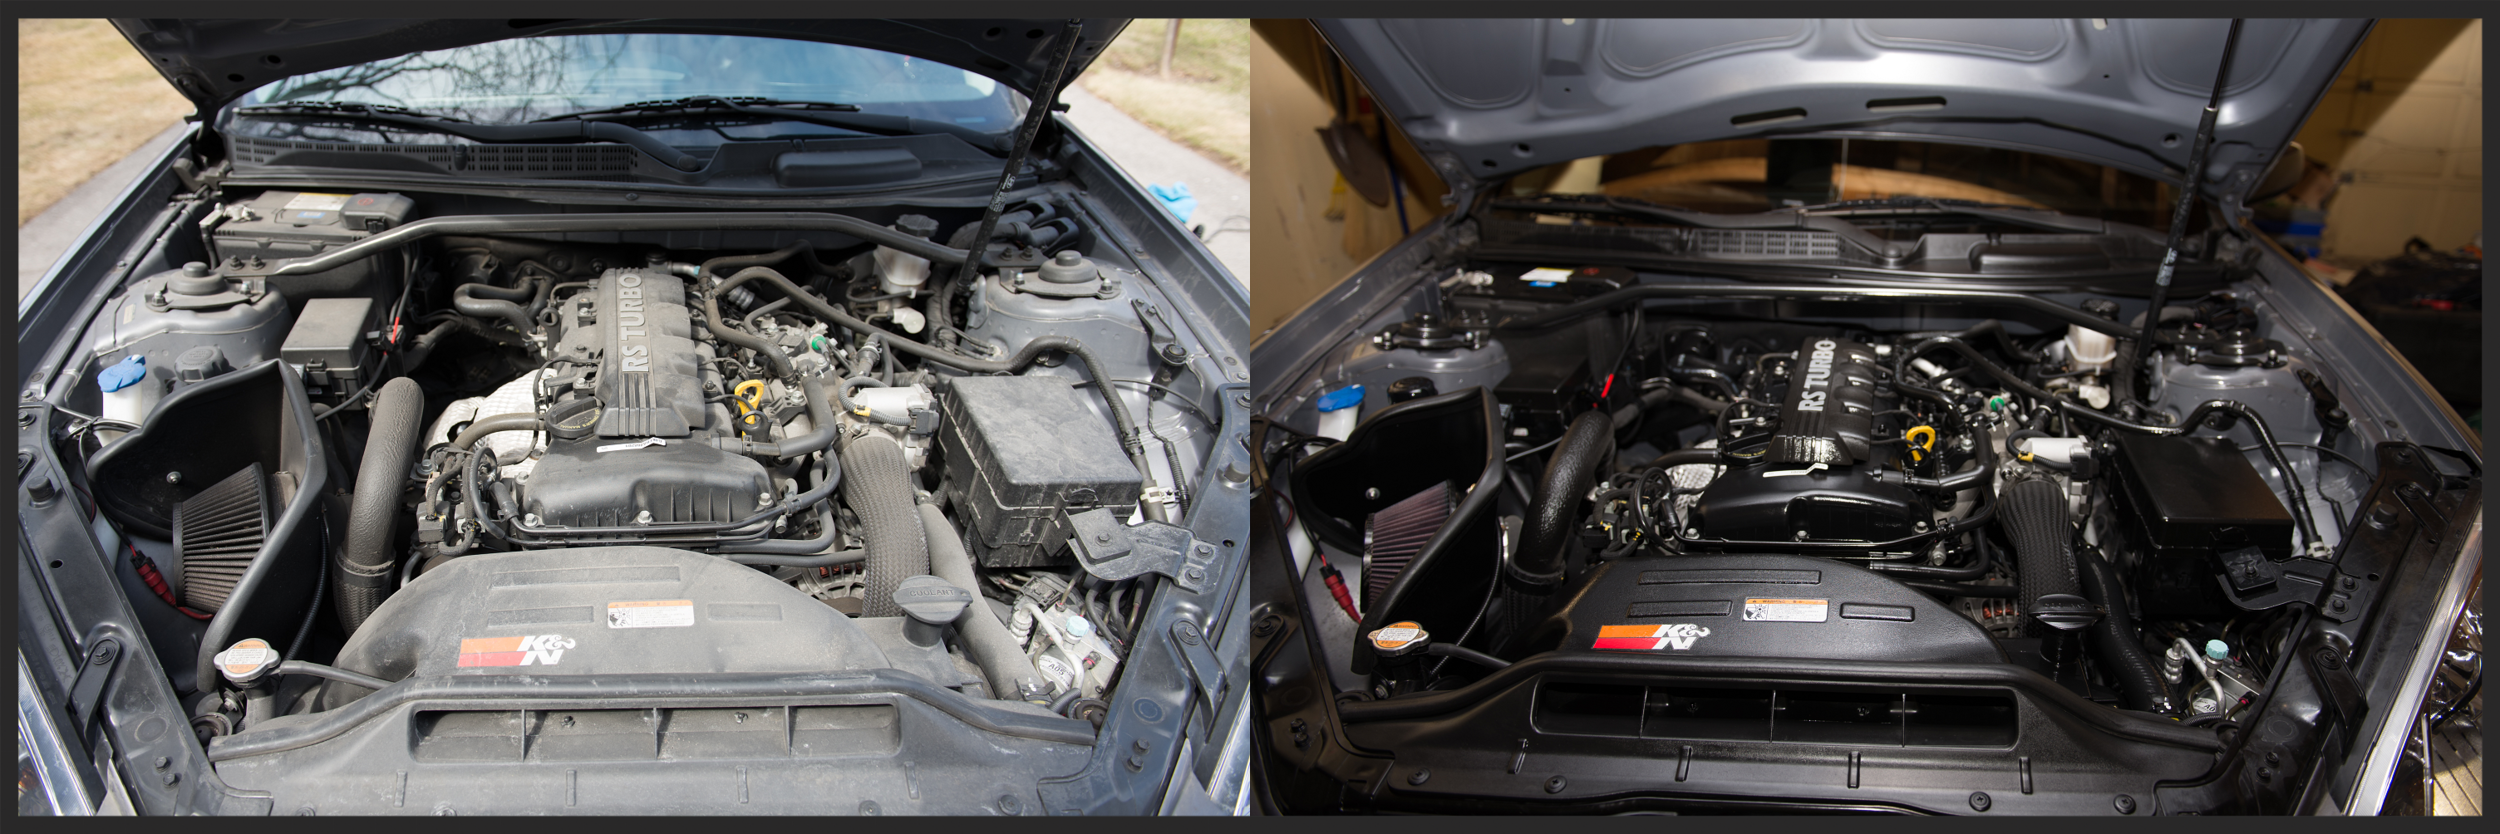 Engine Bay Before and After.png